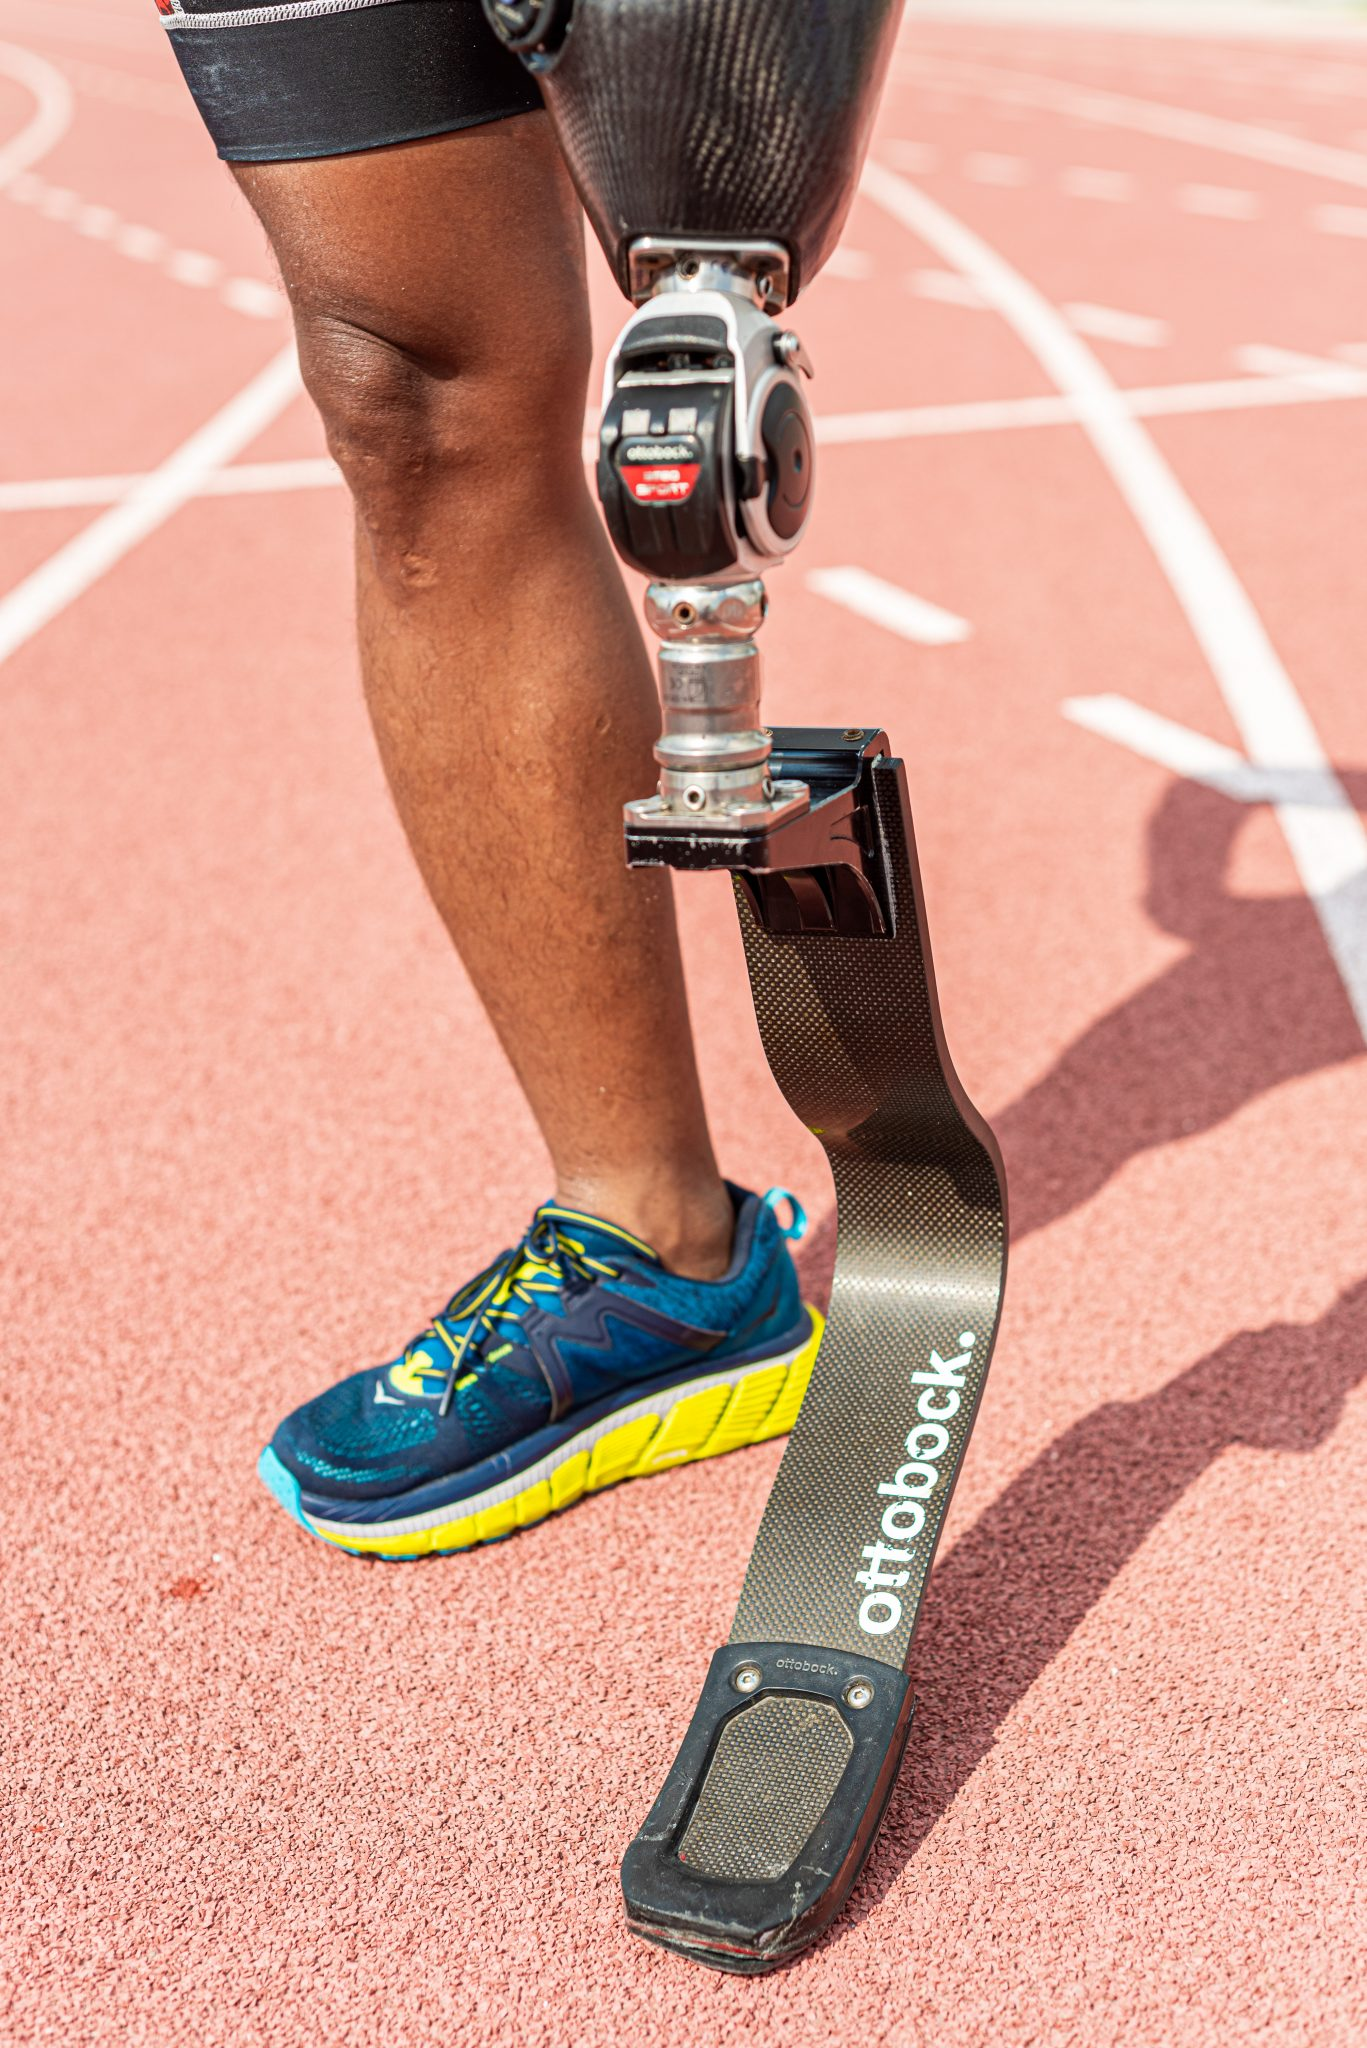 It took Manny Lobrigo a long time to get used to running with a running blade